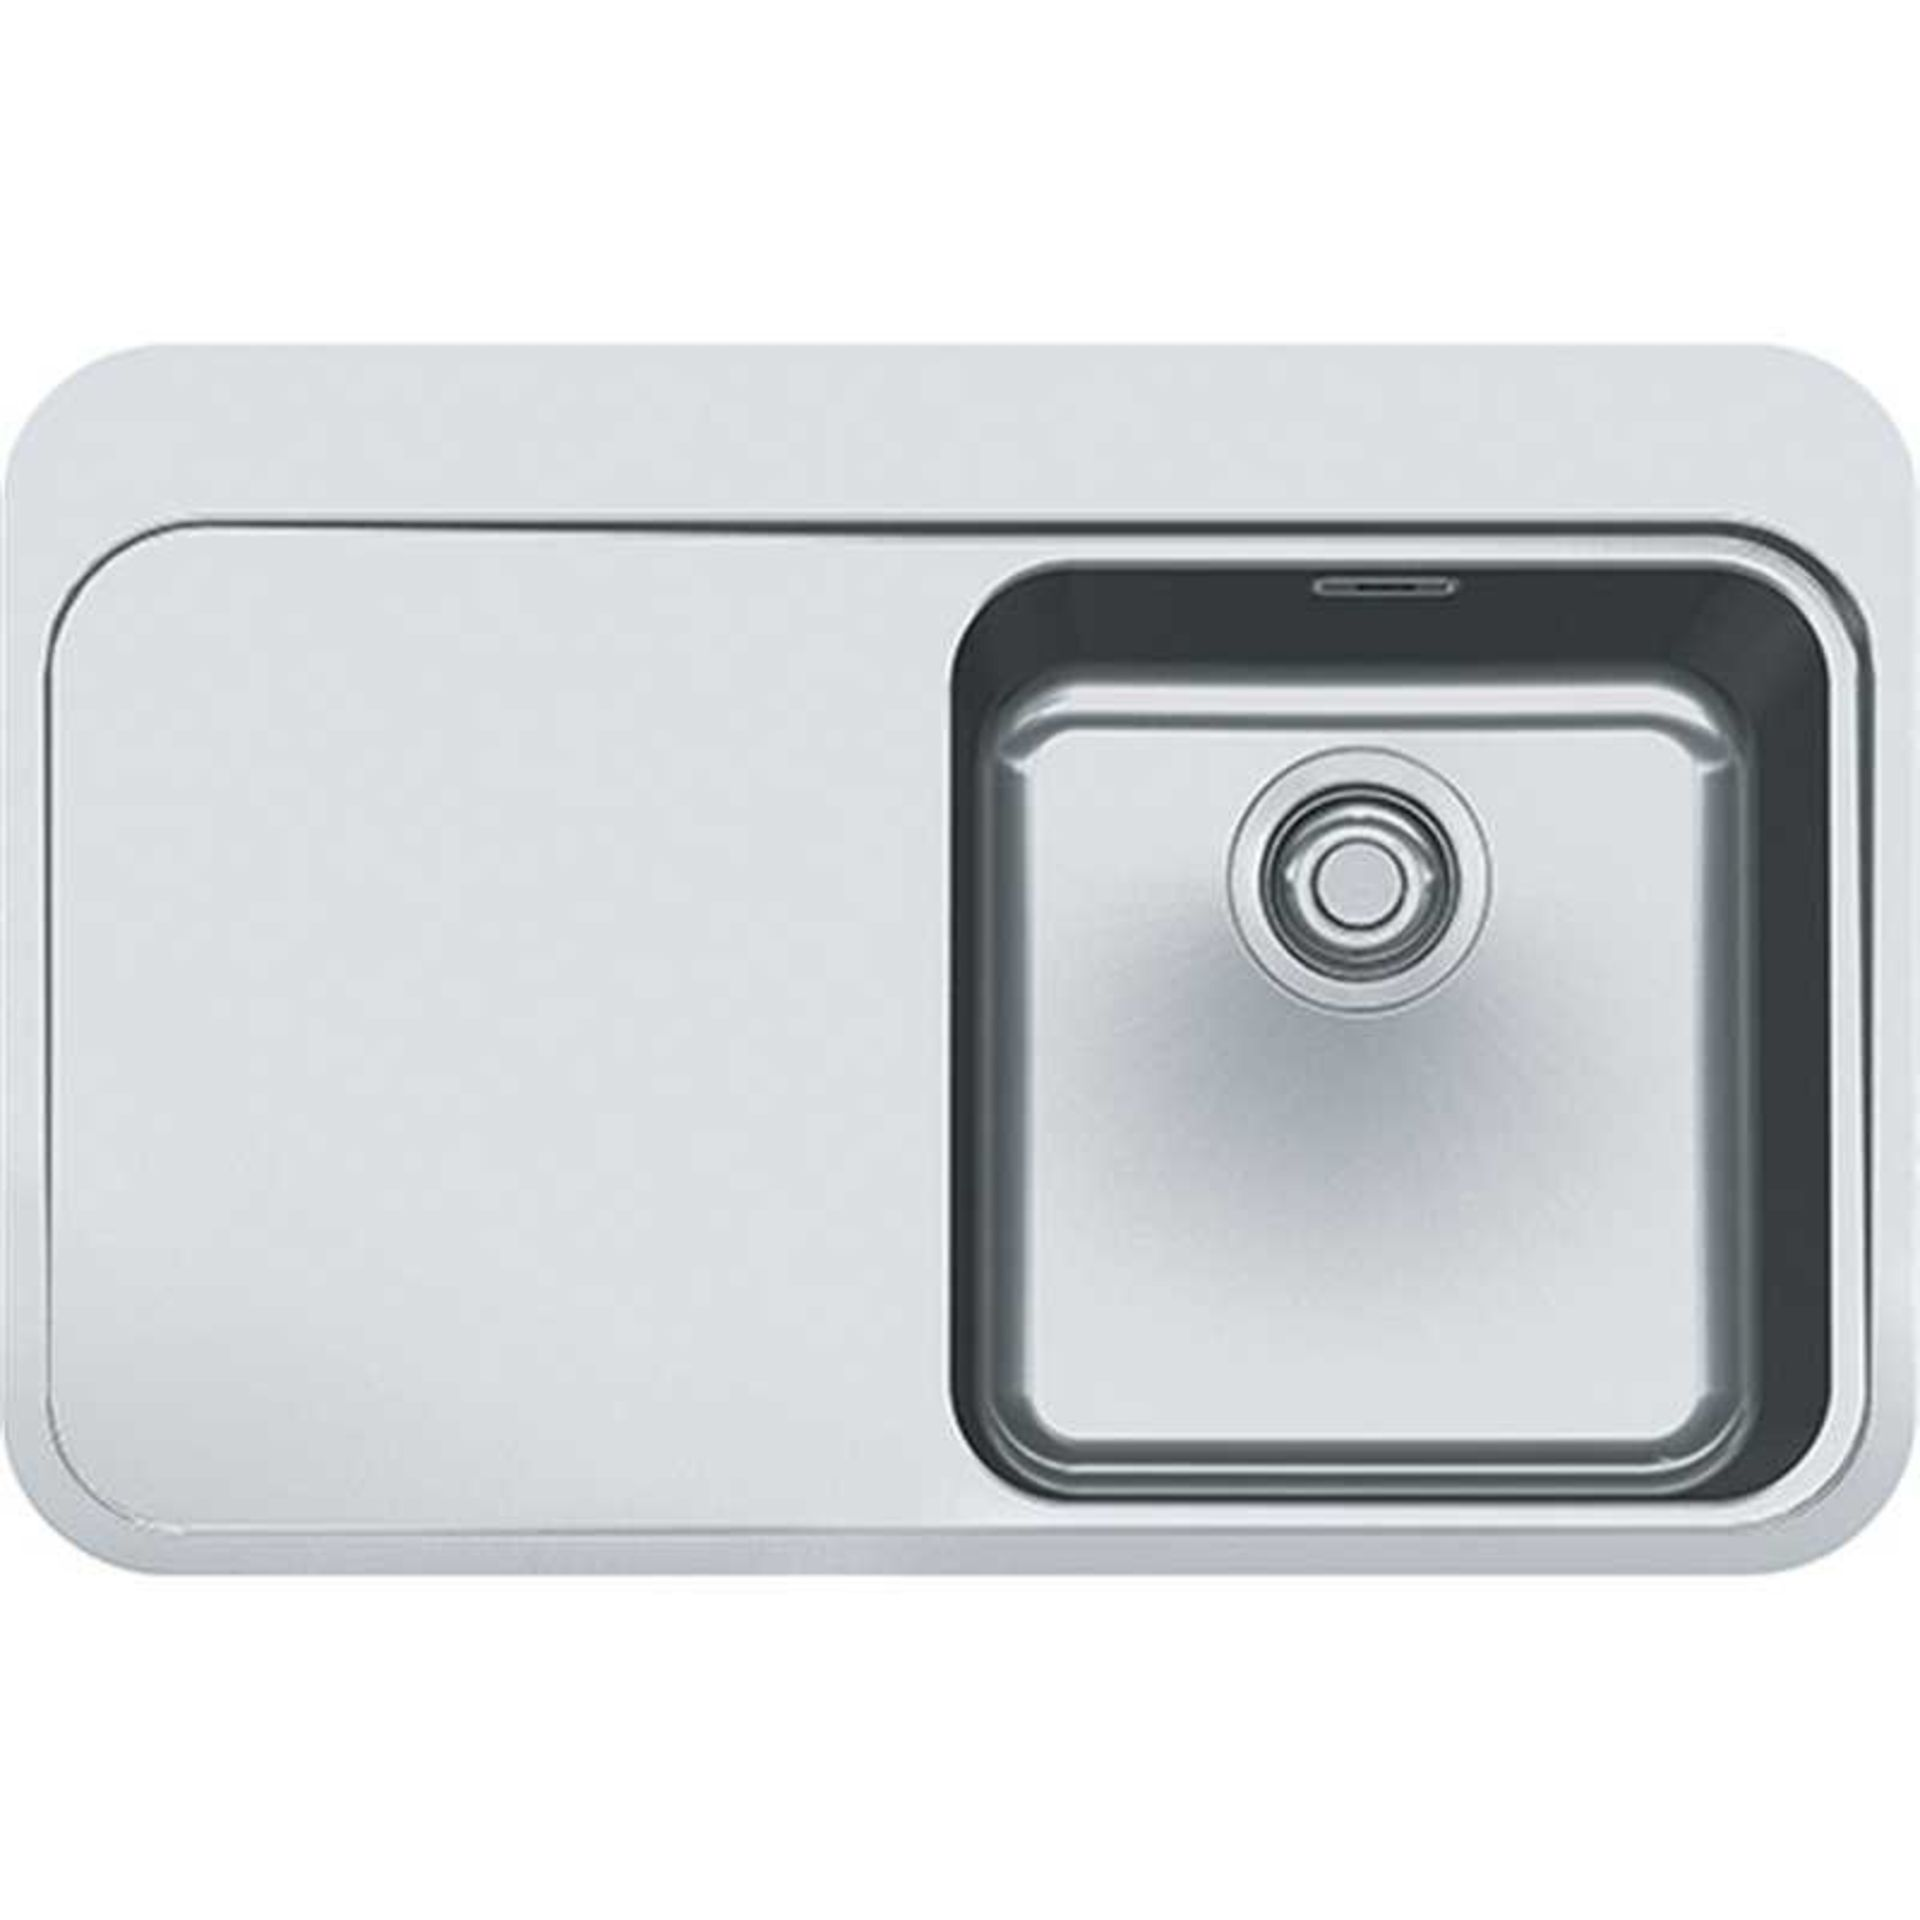 Boxed Brand New Factory Sealed Franke Sink- Model- SNX 211 780x510mm, RRP-£395.00